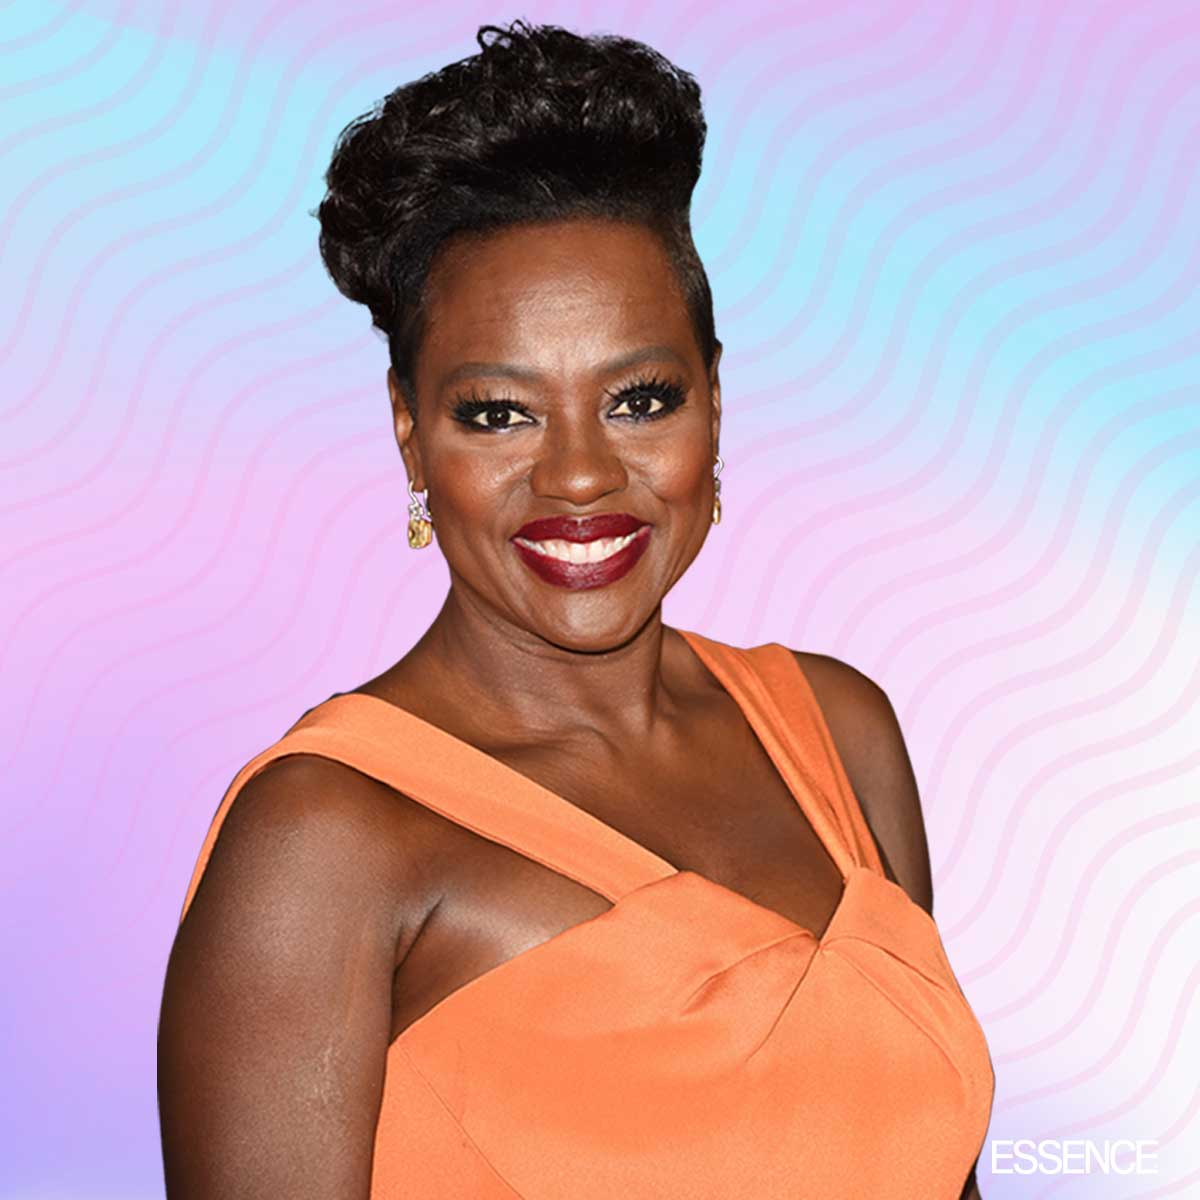 Viola Davis Wears Orange Zac Posen Dress At The Emmys And Is Perfection Per Usual